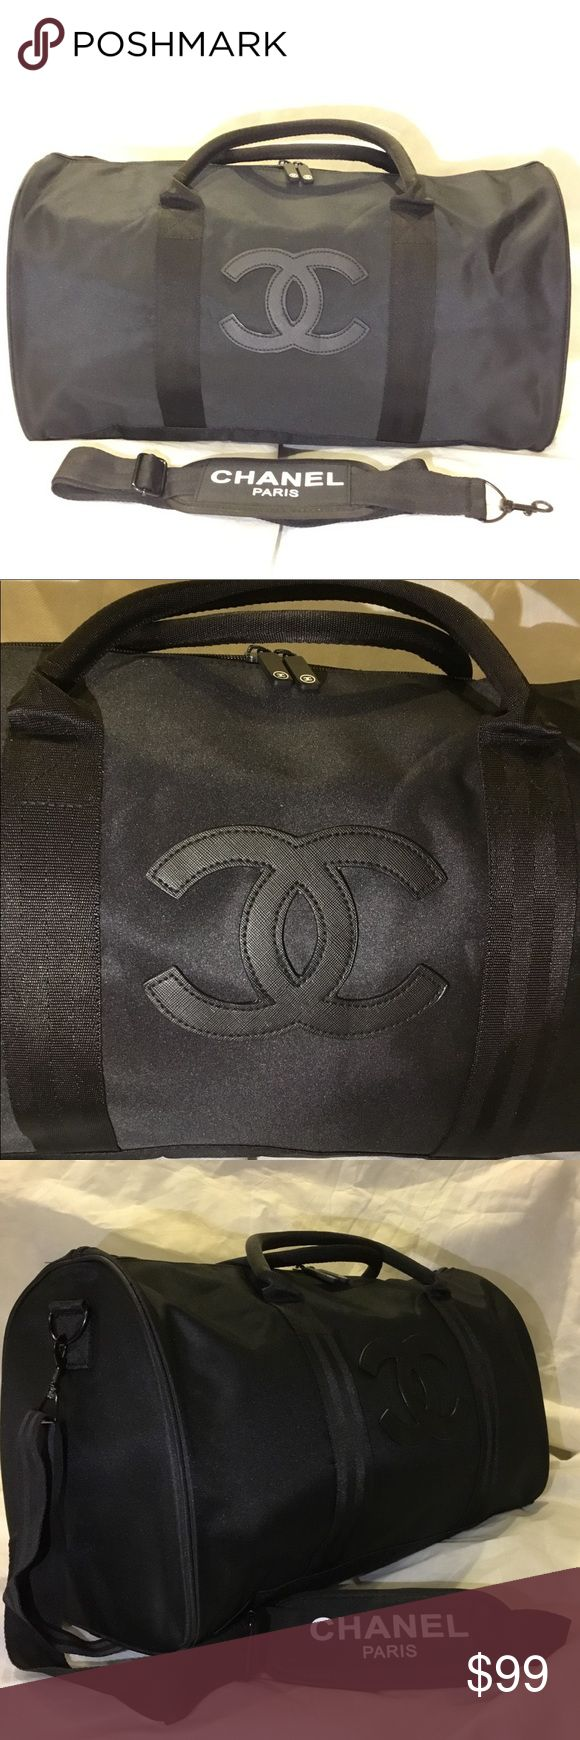 """NEW🔥 Authentic Chanel Duffel Travel Gym VIP Bag NEW ARRIVAL!   100% Authentic!  Black LOGO  Authentic Chanel Duffel,Travel Gym,Shoulder, VIP Gift Bag With Removable Strap  THIS WAS A CHANEL GIFT WITH PURCHASE NOT SOLD IN STORES  No dustbag, box, or hologram authenticity card this is Vip gift for Chanel's best customers.  Measurement(approx):  L 18 X H 12"""" X D 8"""" / 48cm x 27cm x 23cm  Condition: New , NO BOX  100% authentic CHANEL Bags Travel Bags"""